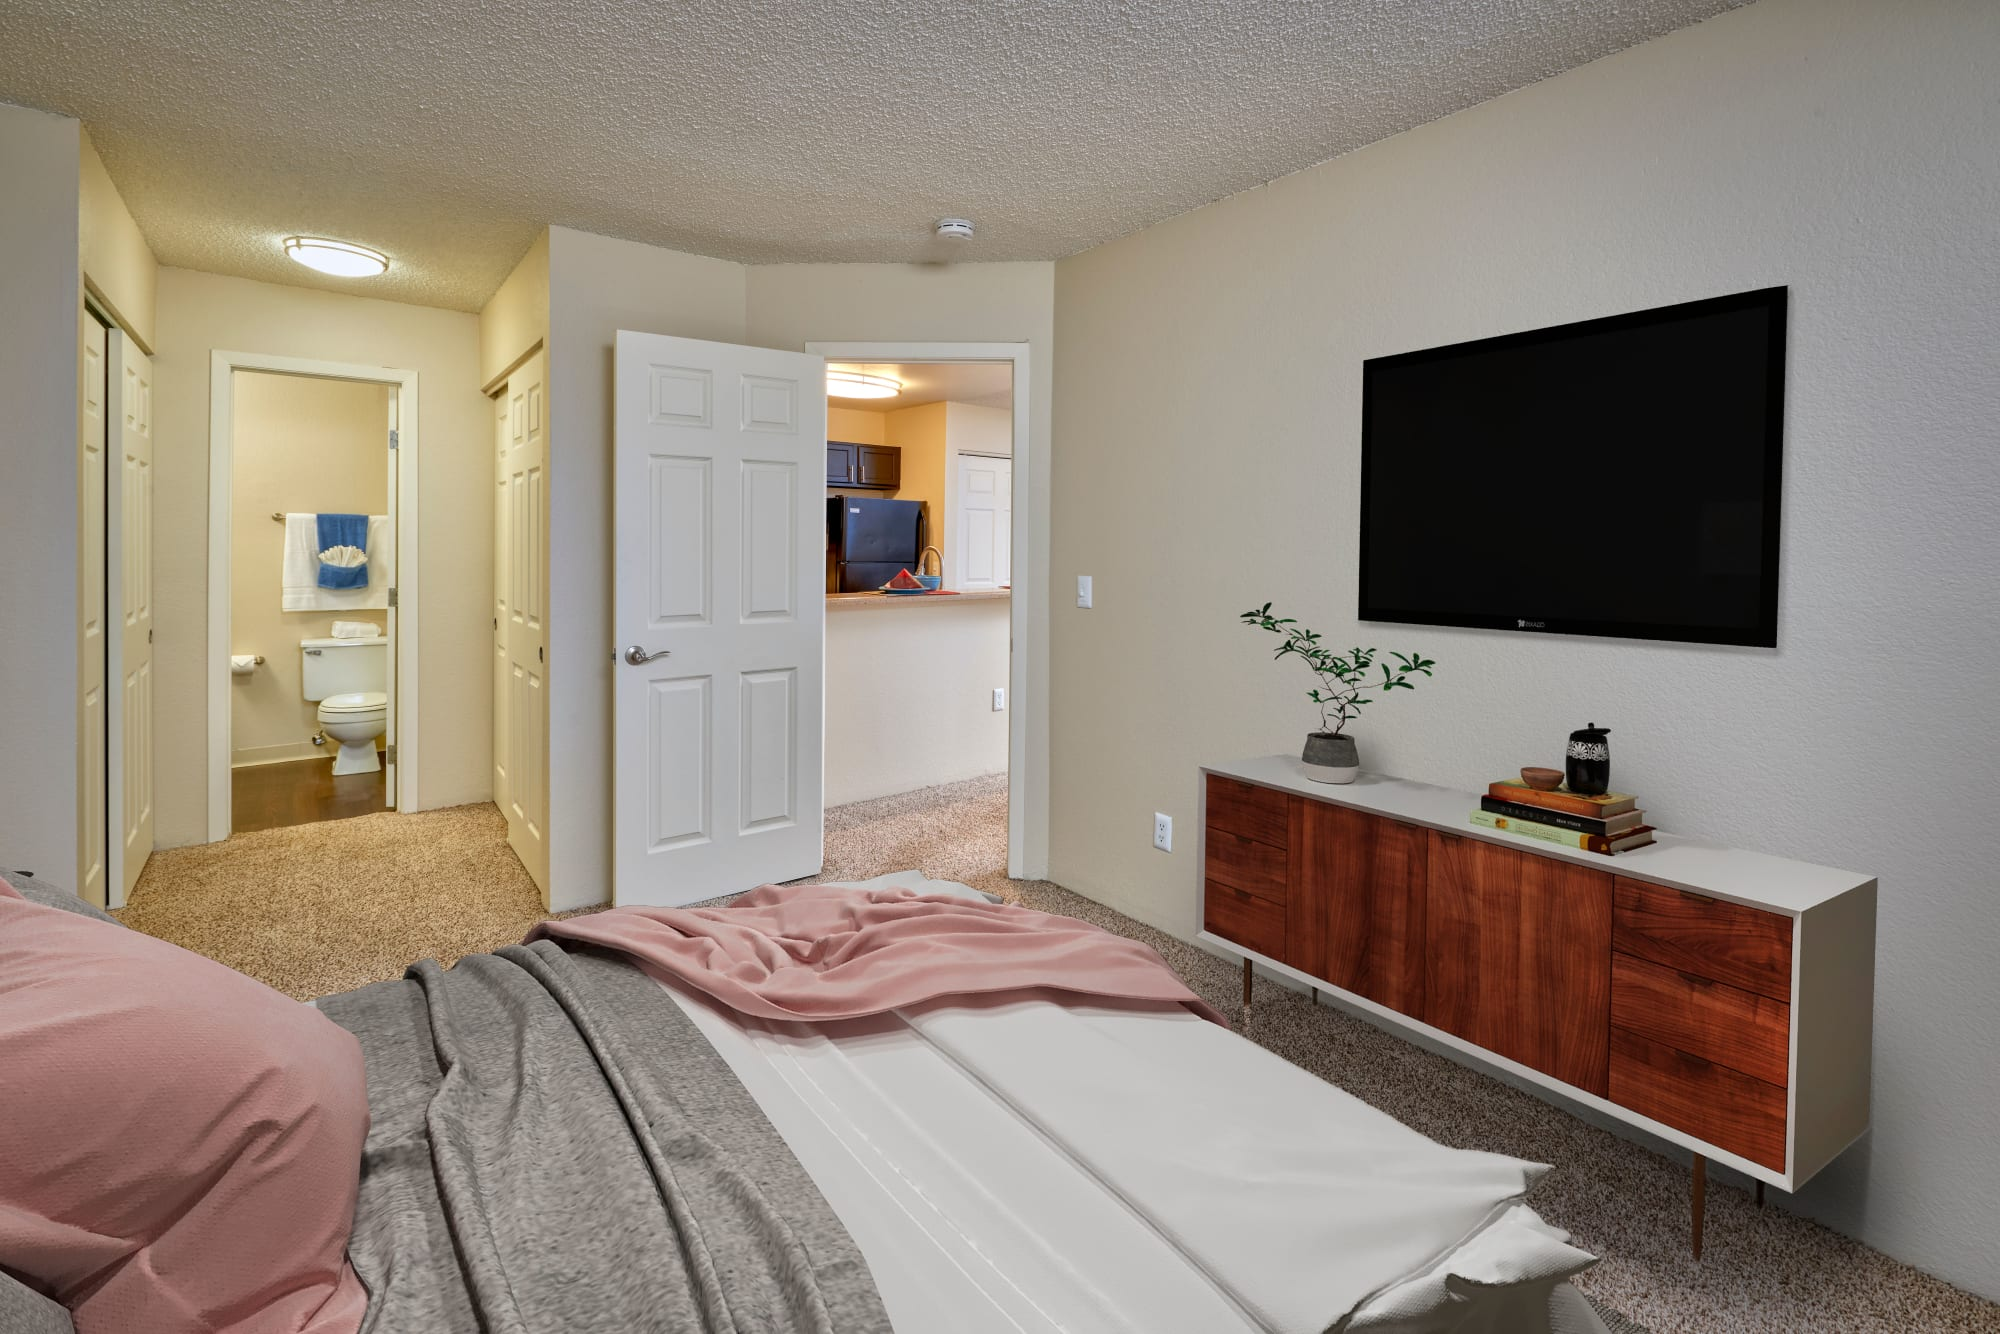 Master Bedroom at Bluesky Landing Apartments in Lakewood, Colorado